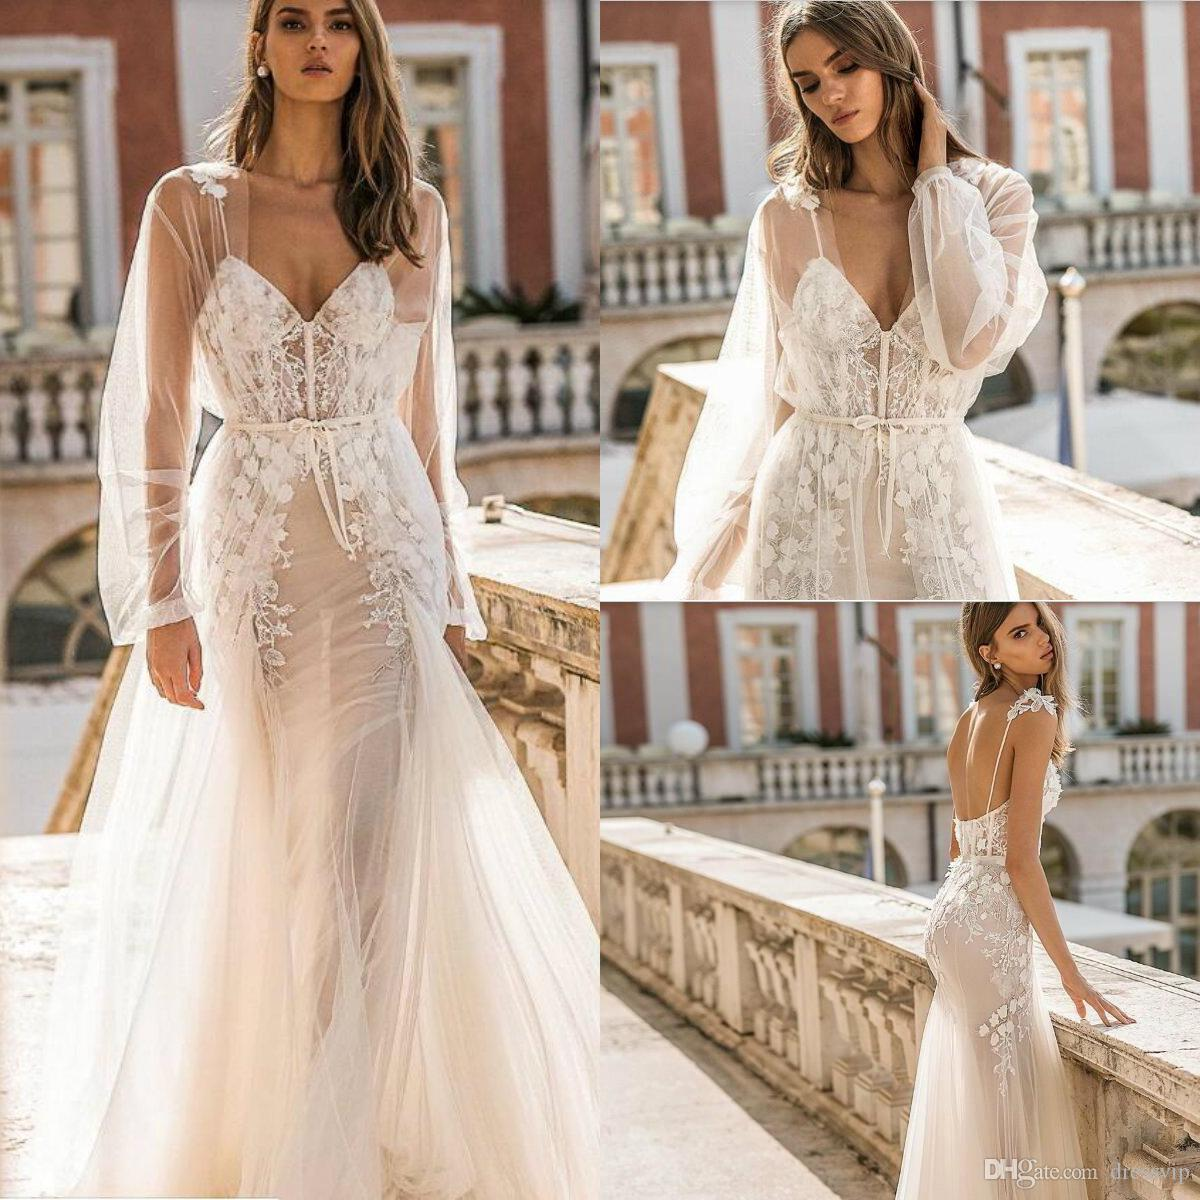 2019 Berta Mermaid Wedding Dresses With Long Jacket Spaghetti Lace Appliques Illusion Beaded Sexy Wedding Dress Plus Size Bridal Gowns